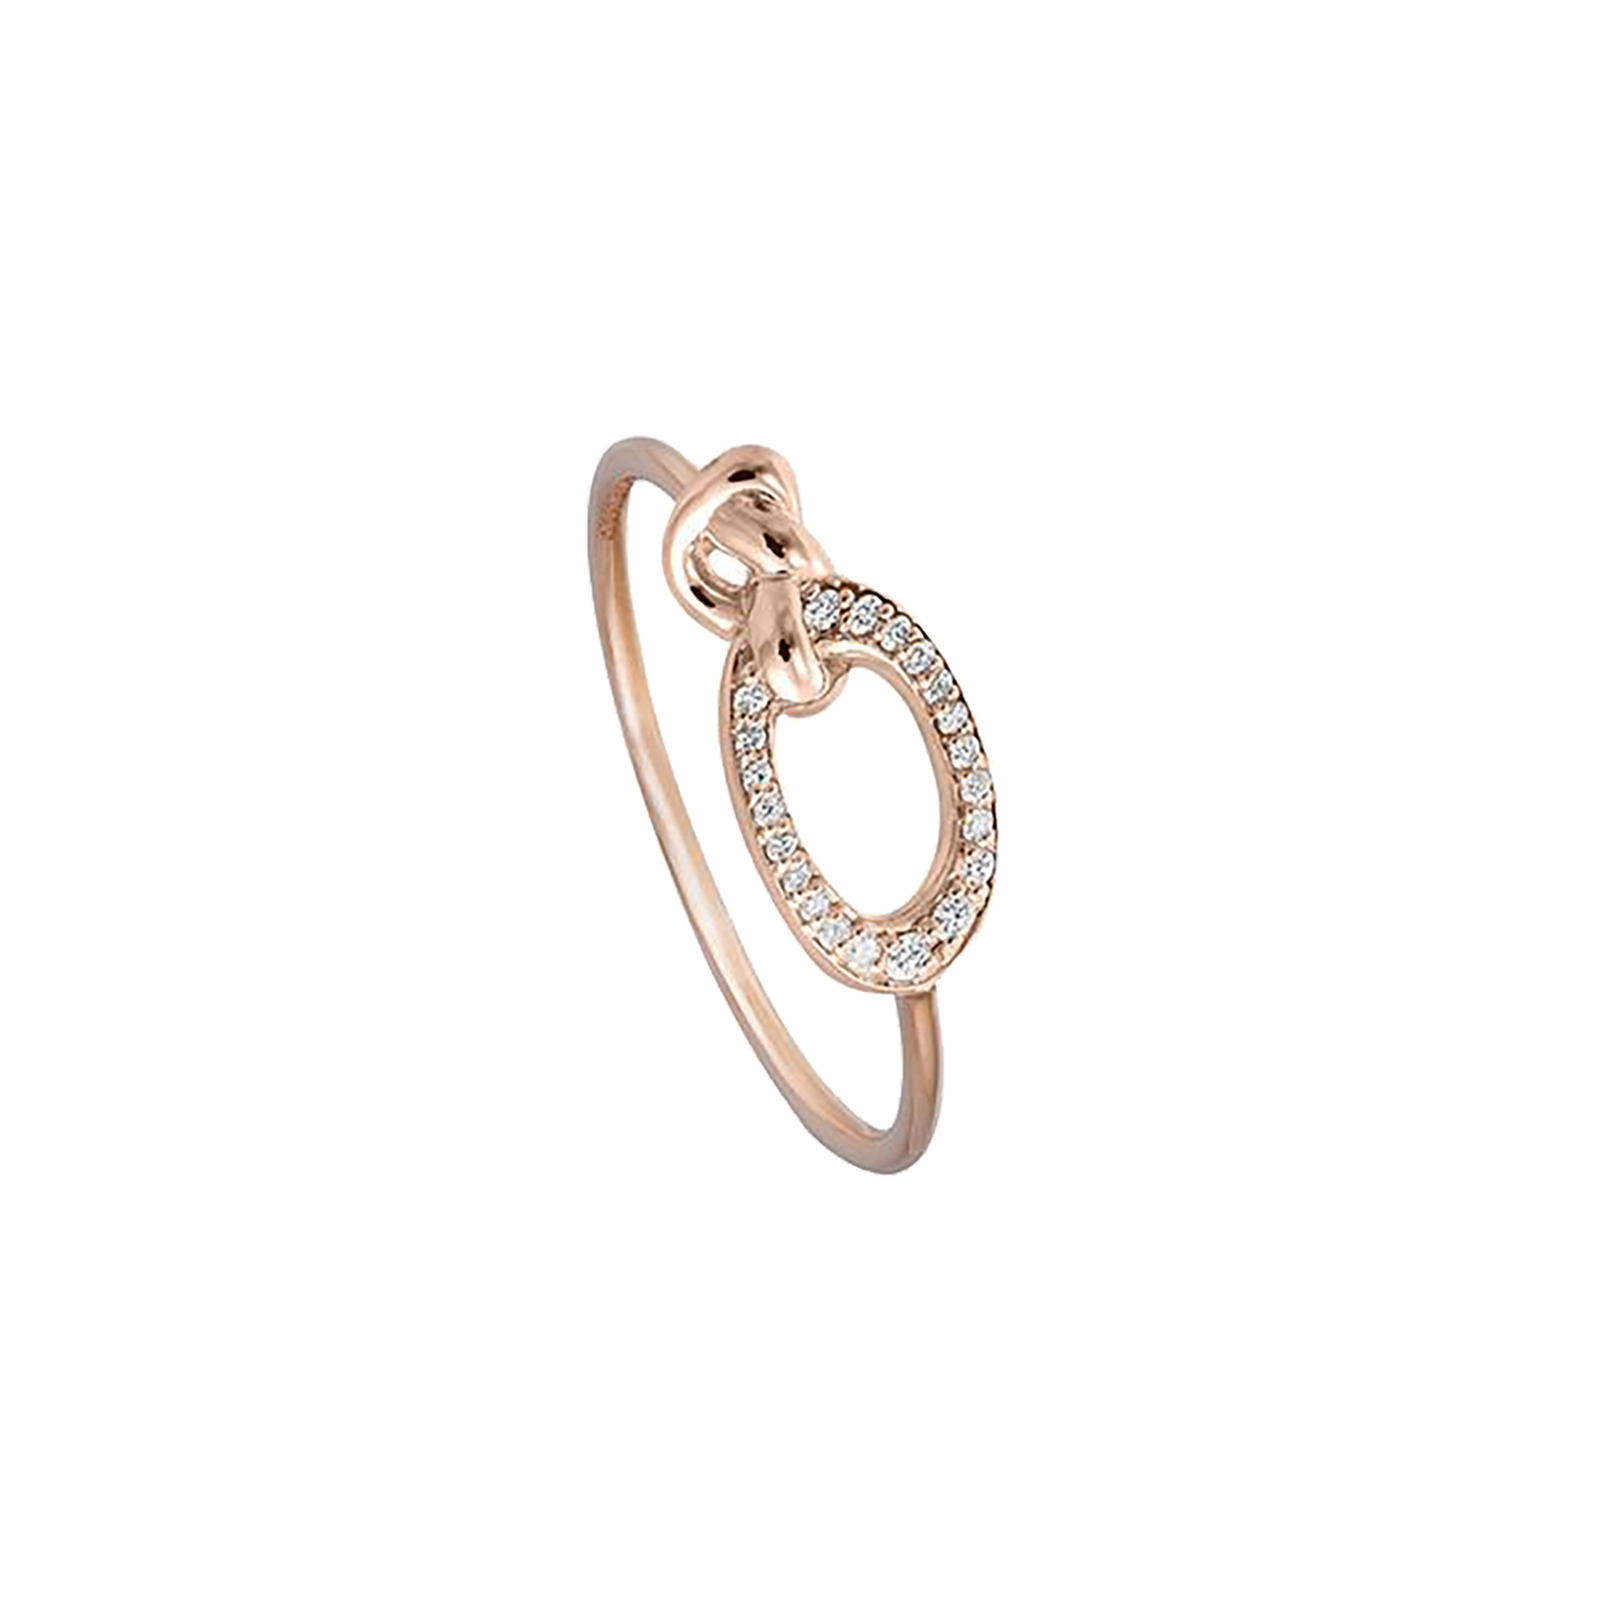 Di Modolo Nodo 18ct Rose Gold and 0.09cttw Diamond Ring - Ring Size 6.5